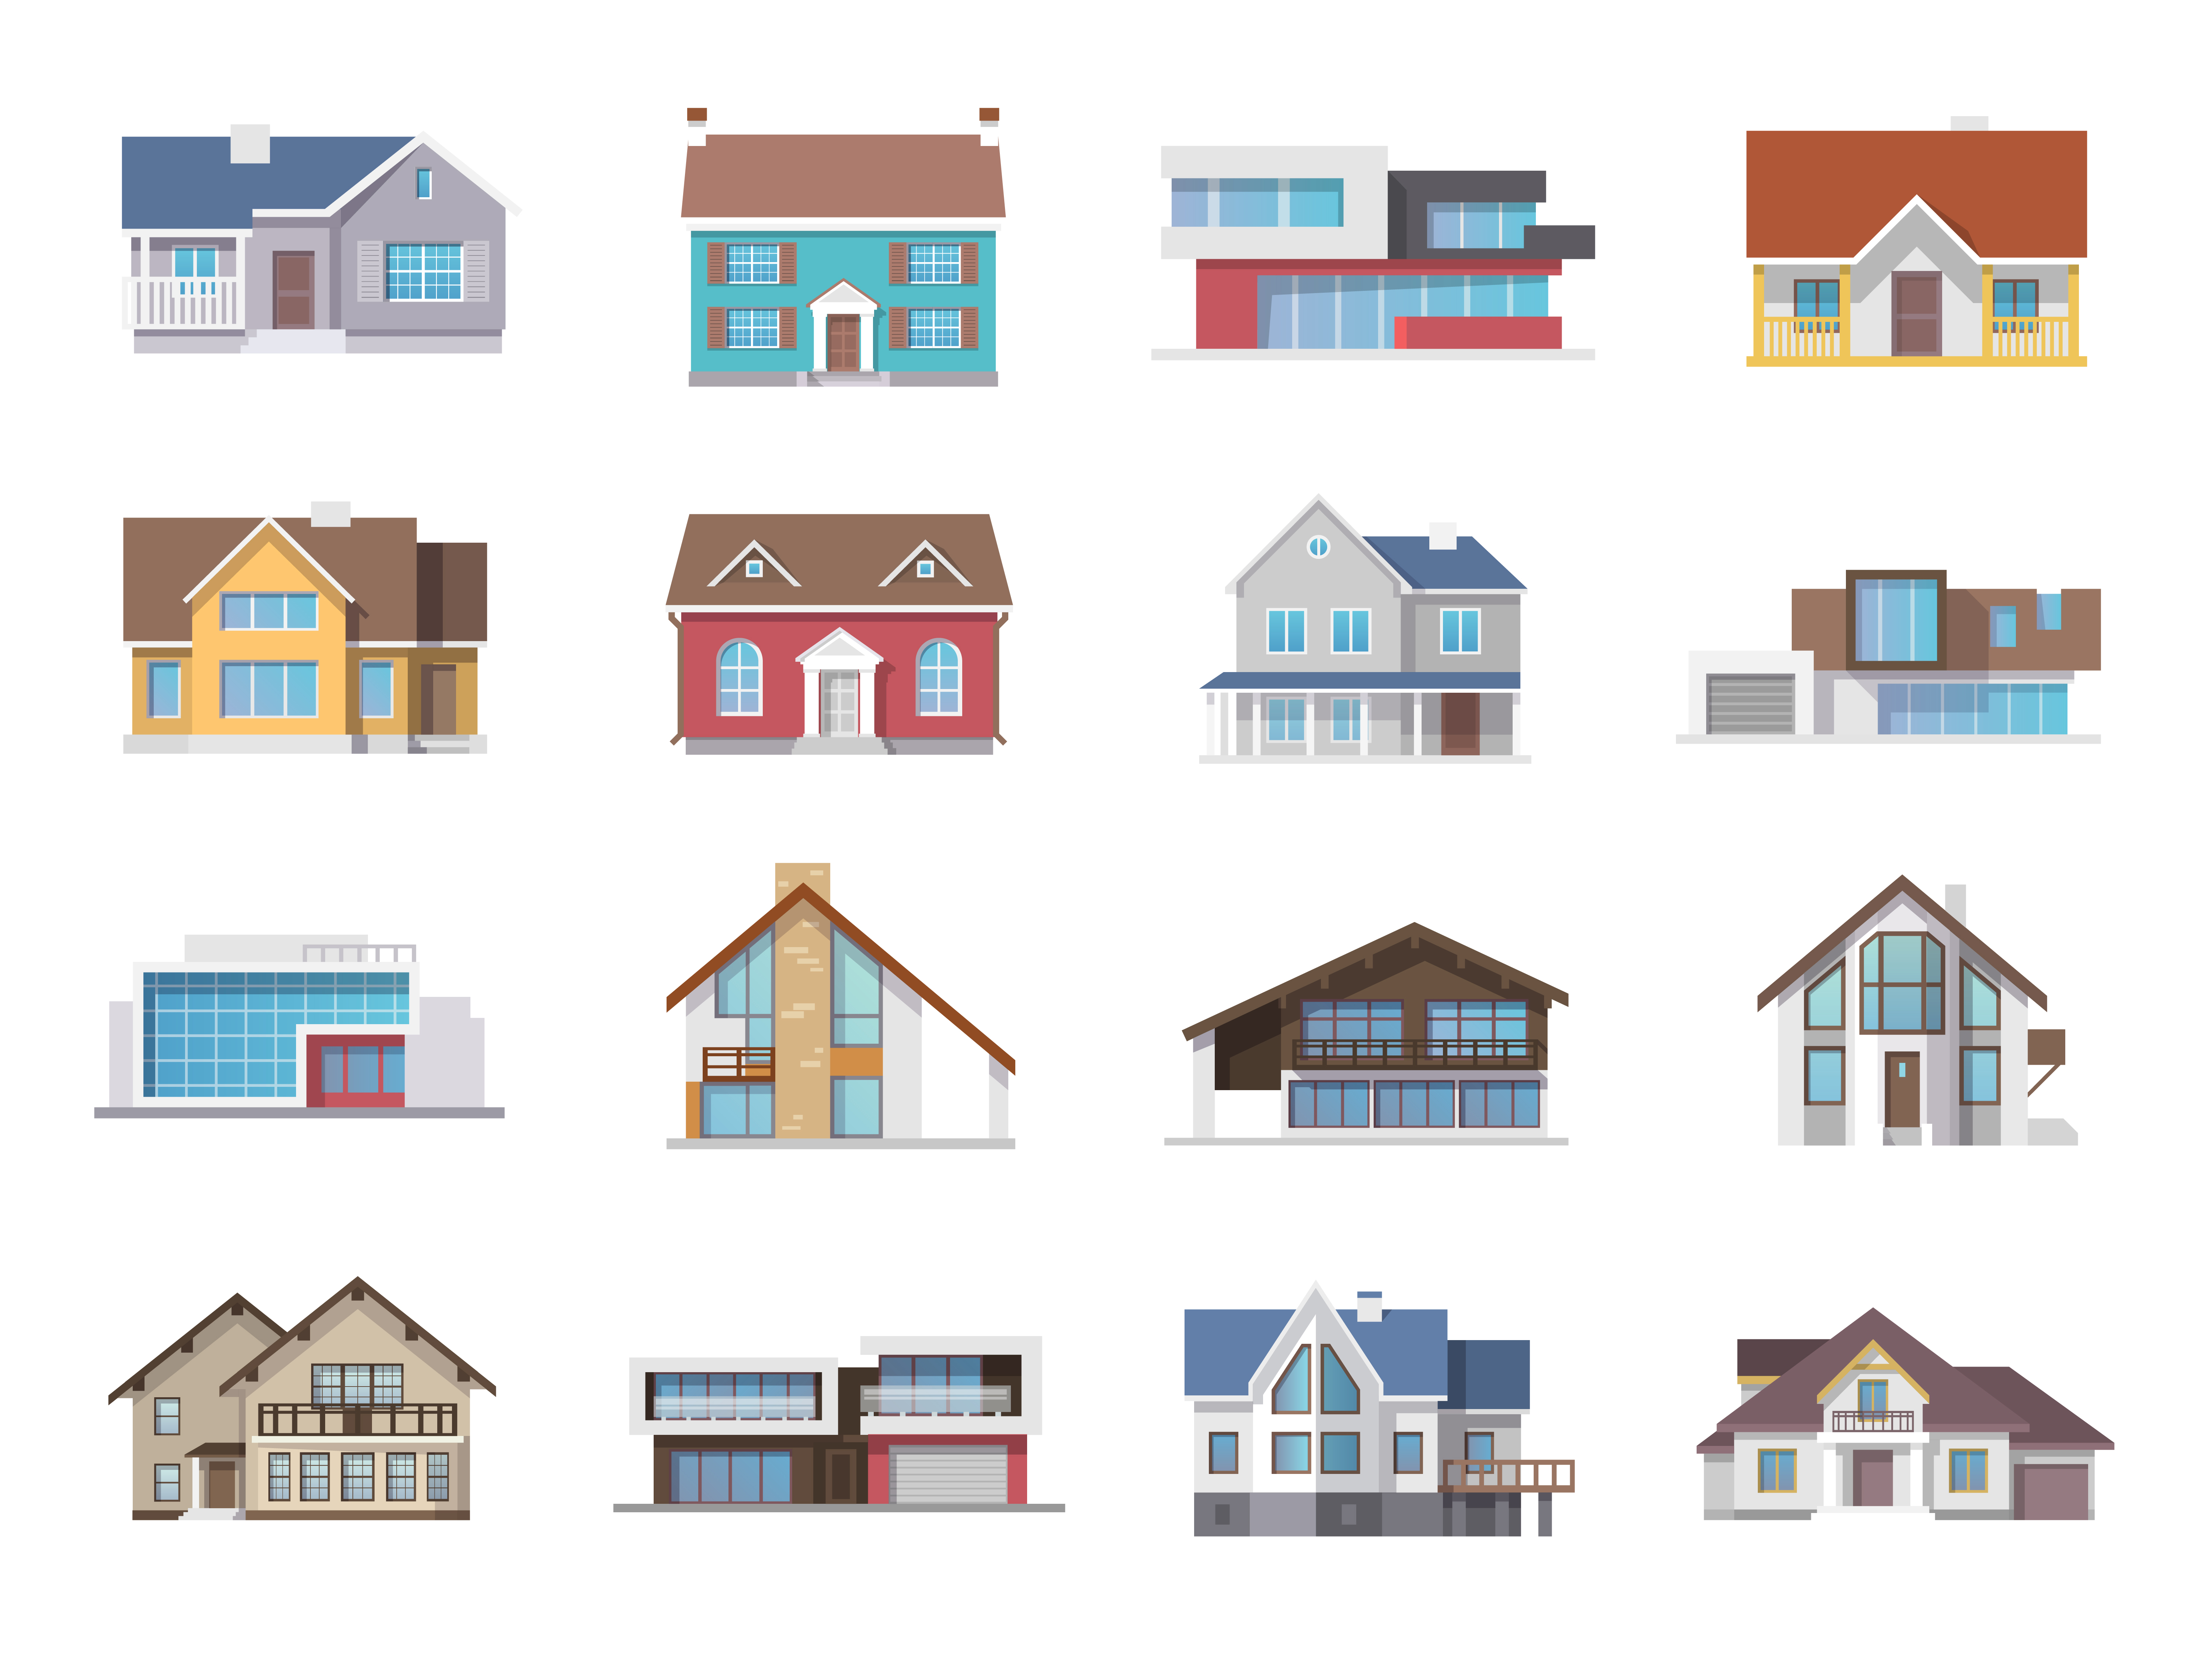 House Icons Flat - Download Free Vectors, Clipart Graphics ...